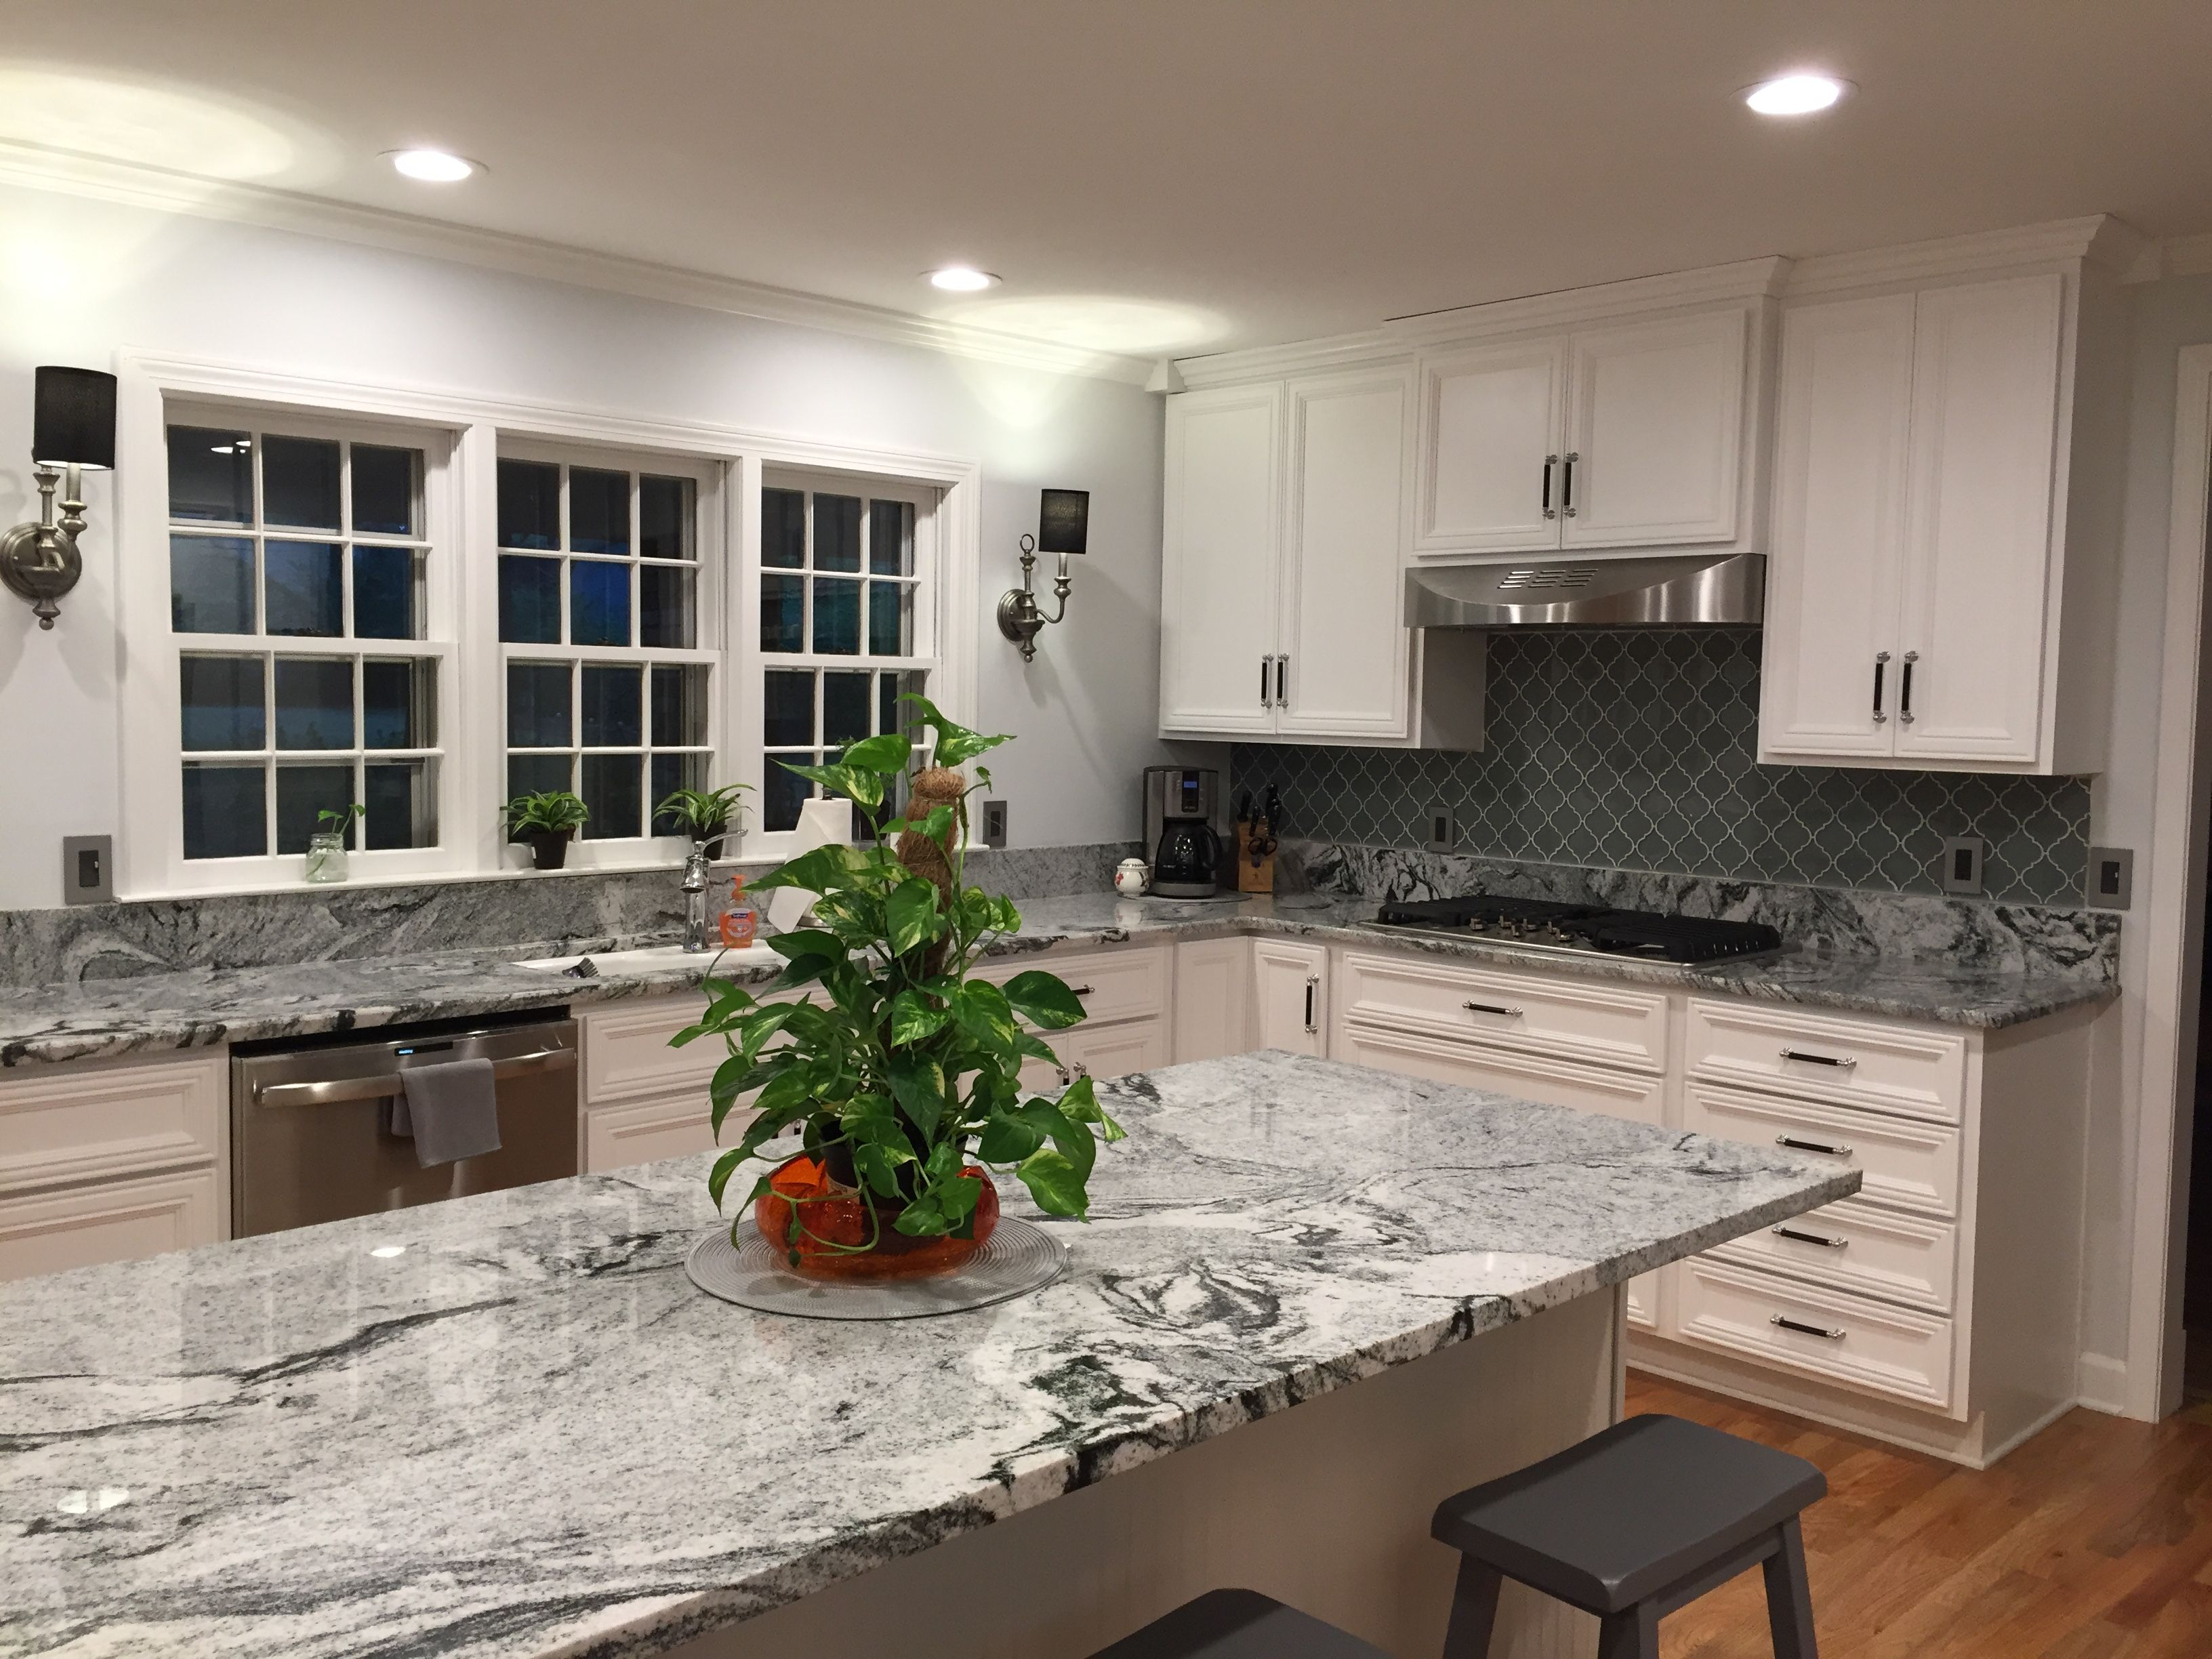 - Granite: Viscon White Backsplash: Arabesque Glass Tile White